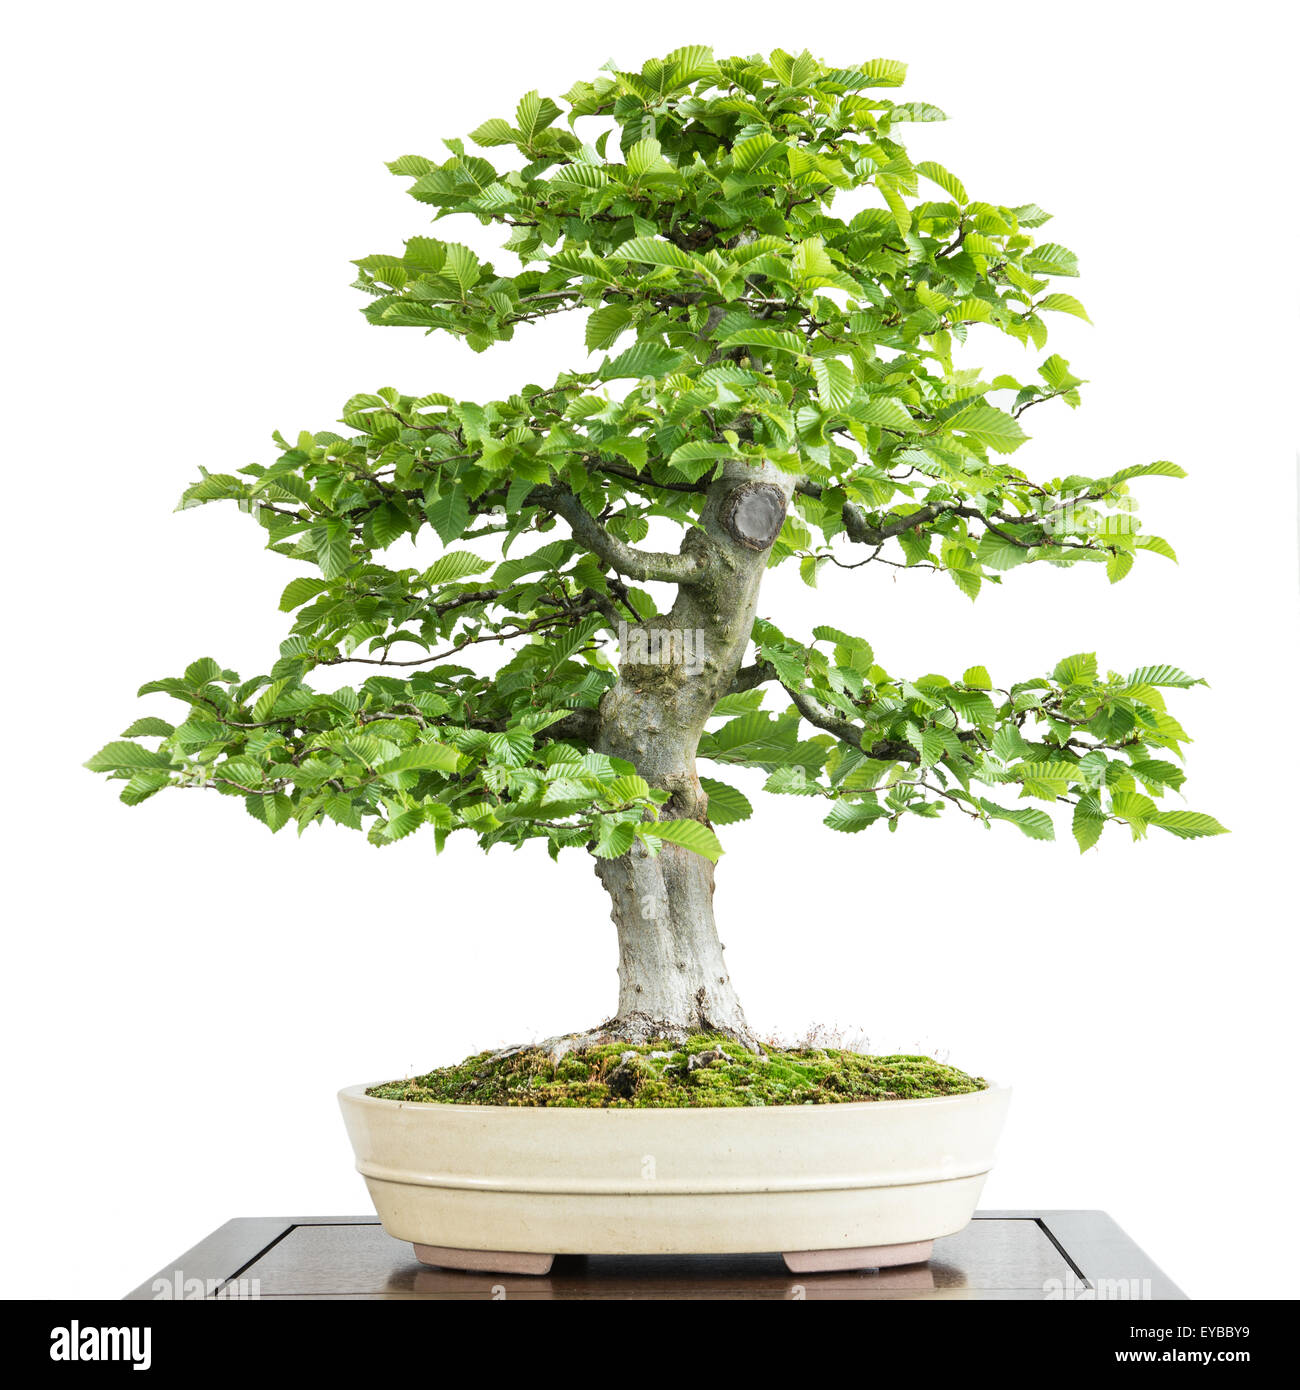 old common hornbeam carpinus betulus as bonsai tree stock photo royalty free image 85688045. Black Bedroom Furniture Sets. Home Design Ideas